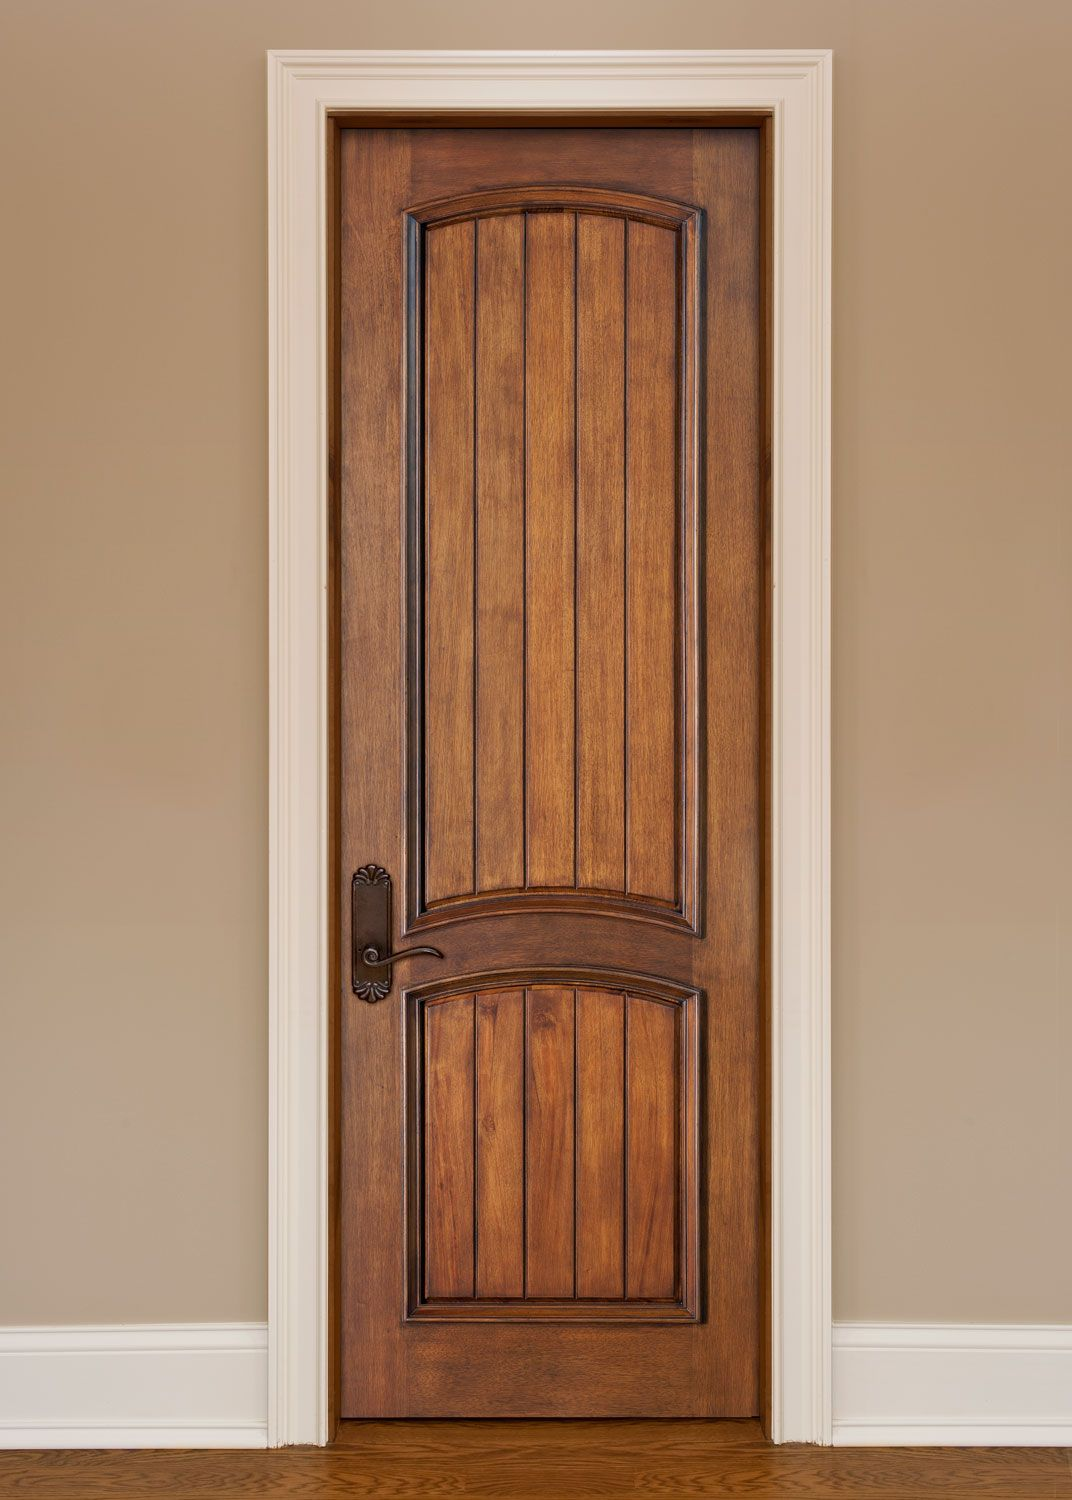 Round top pre hung mahogany doors top of the line - Unique Designs Expert Craftsmanship And Superior Quality Hardwoods For Supreme Customer Satisfaction Custom Solid Wood Interior Doors By Glenview Doors